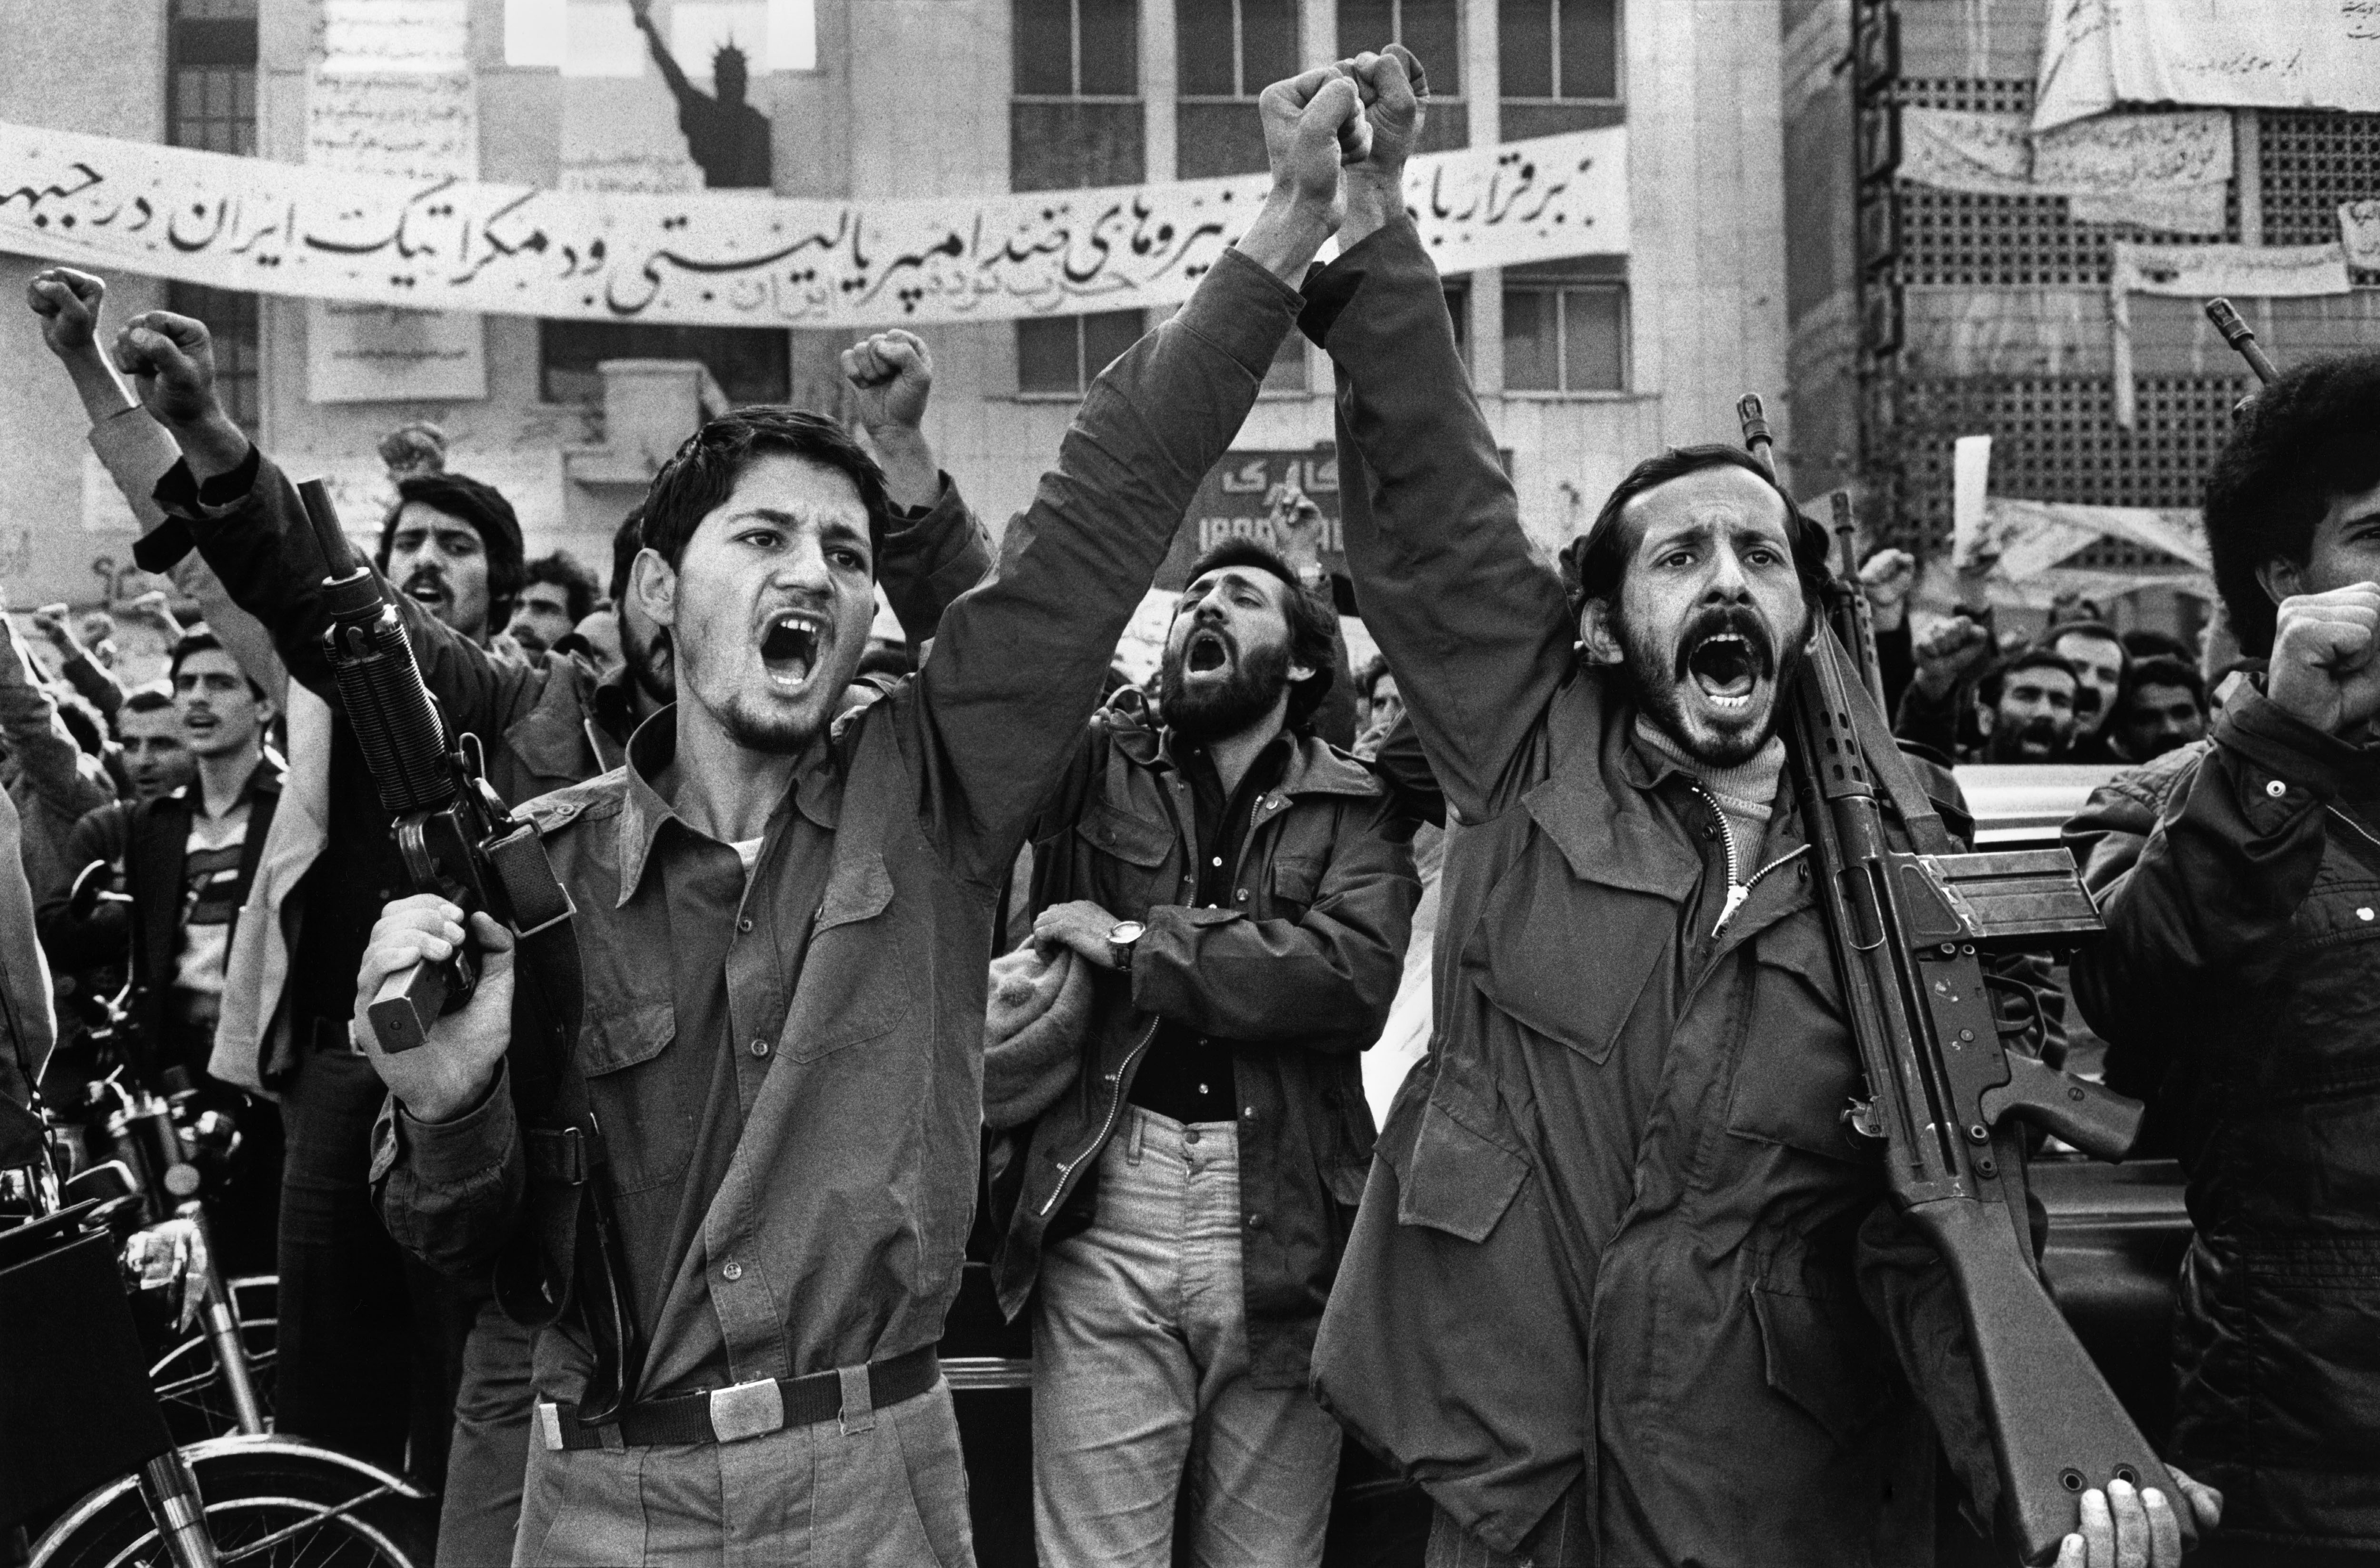 IRAN. Tehran. Armed militants outside the United States Embassy, where diplomats are held hostage since Nov. 4th, 1979. In the background is a banner with the American Statue of Liberty.